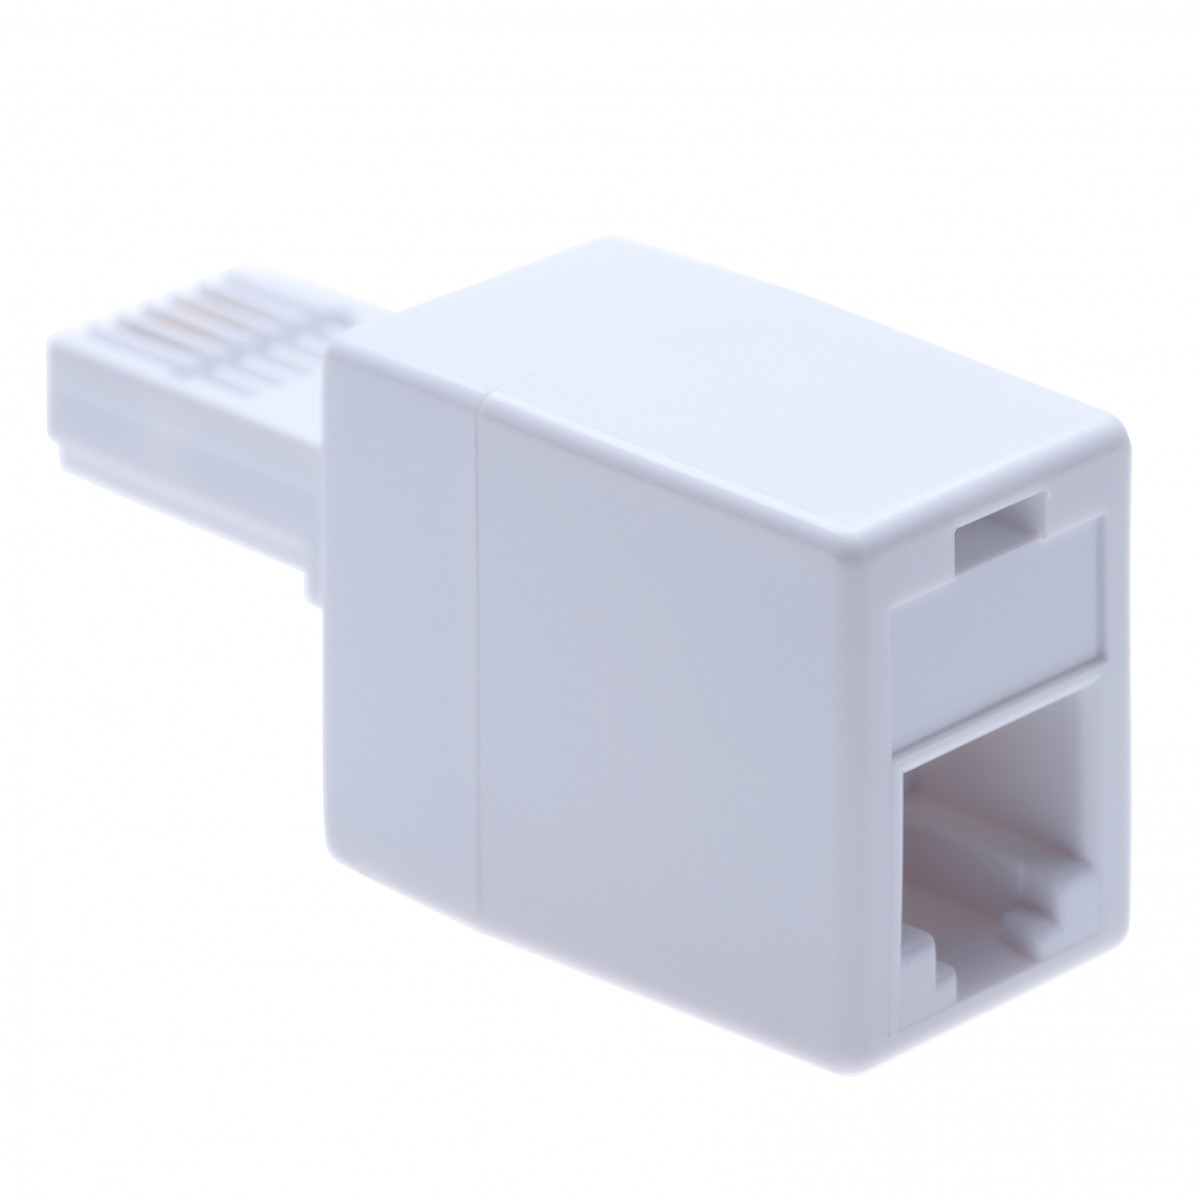 BT Telephone Line Cable Adapter from RJ400 Socket Female Jack to BS400 400A  Male Plug   British UK Modular Standard Connector to 400P40C for RJ400 ...